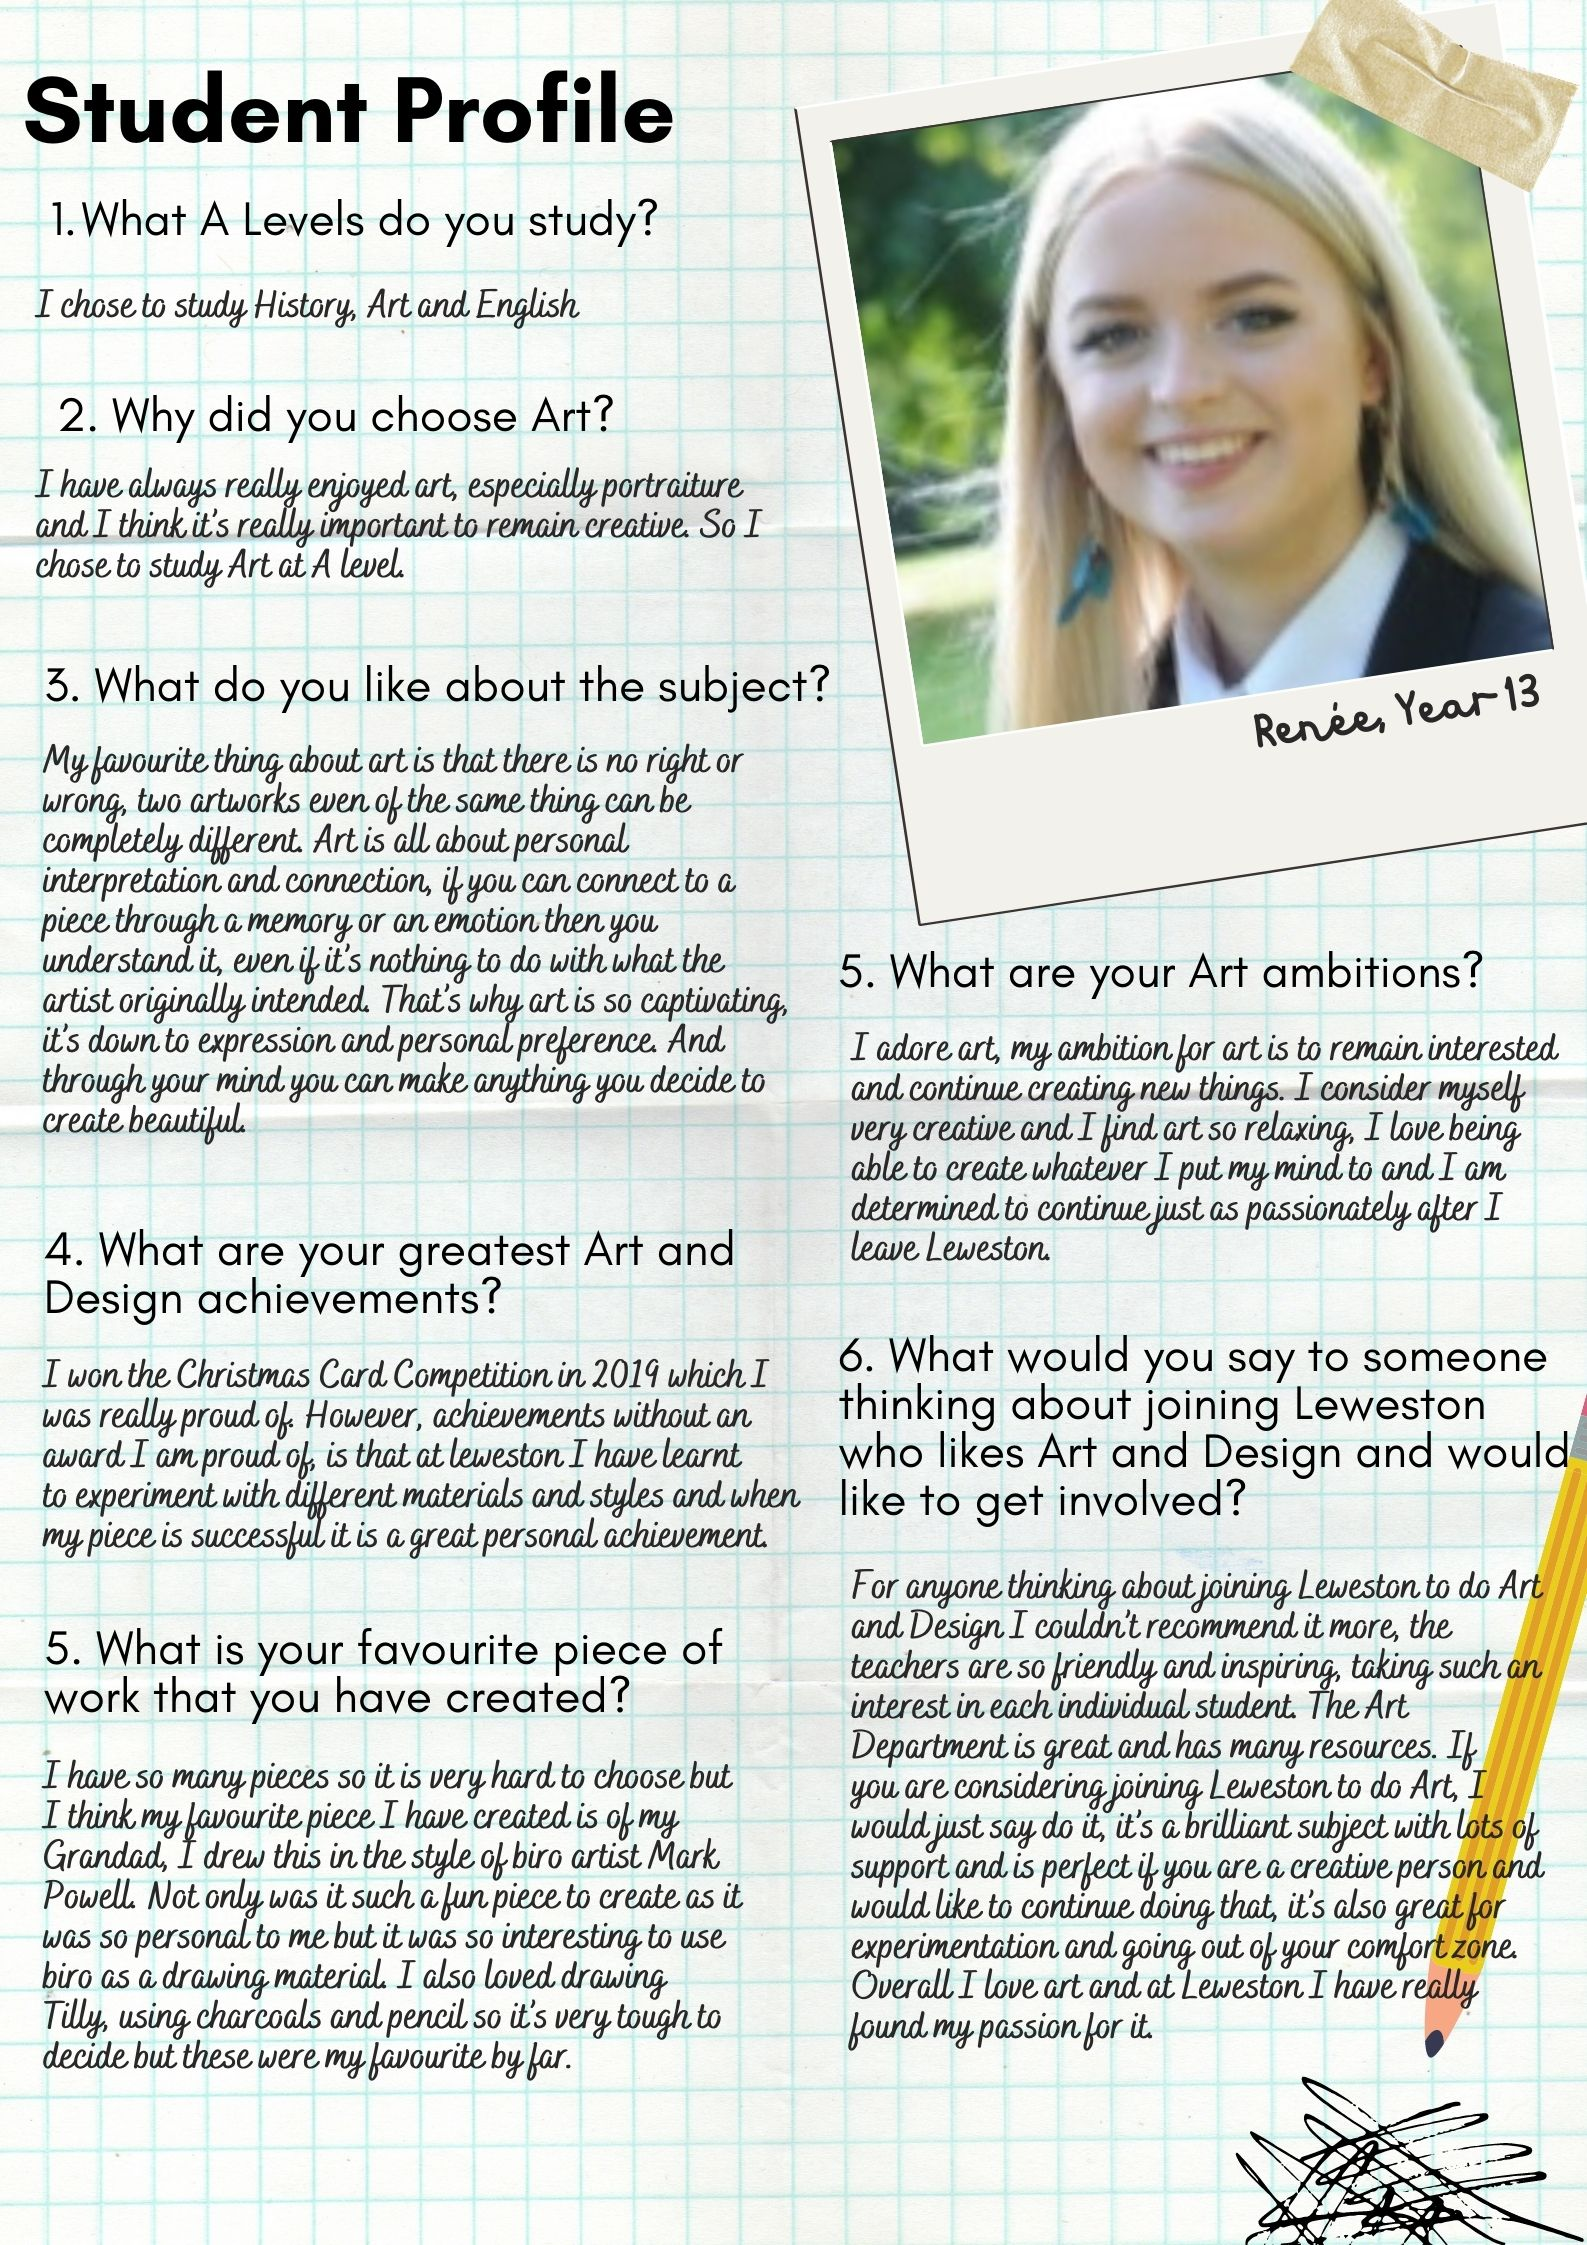 Renee Art Student Profile Leweston Sixth Form